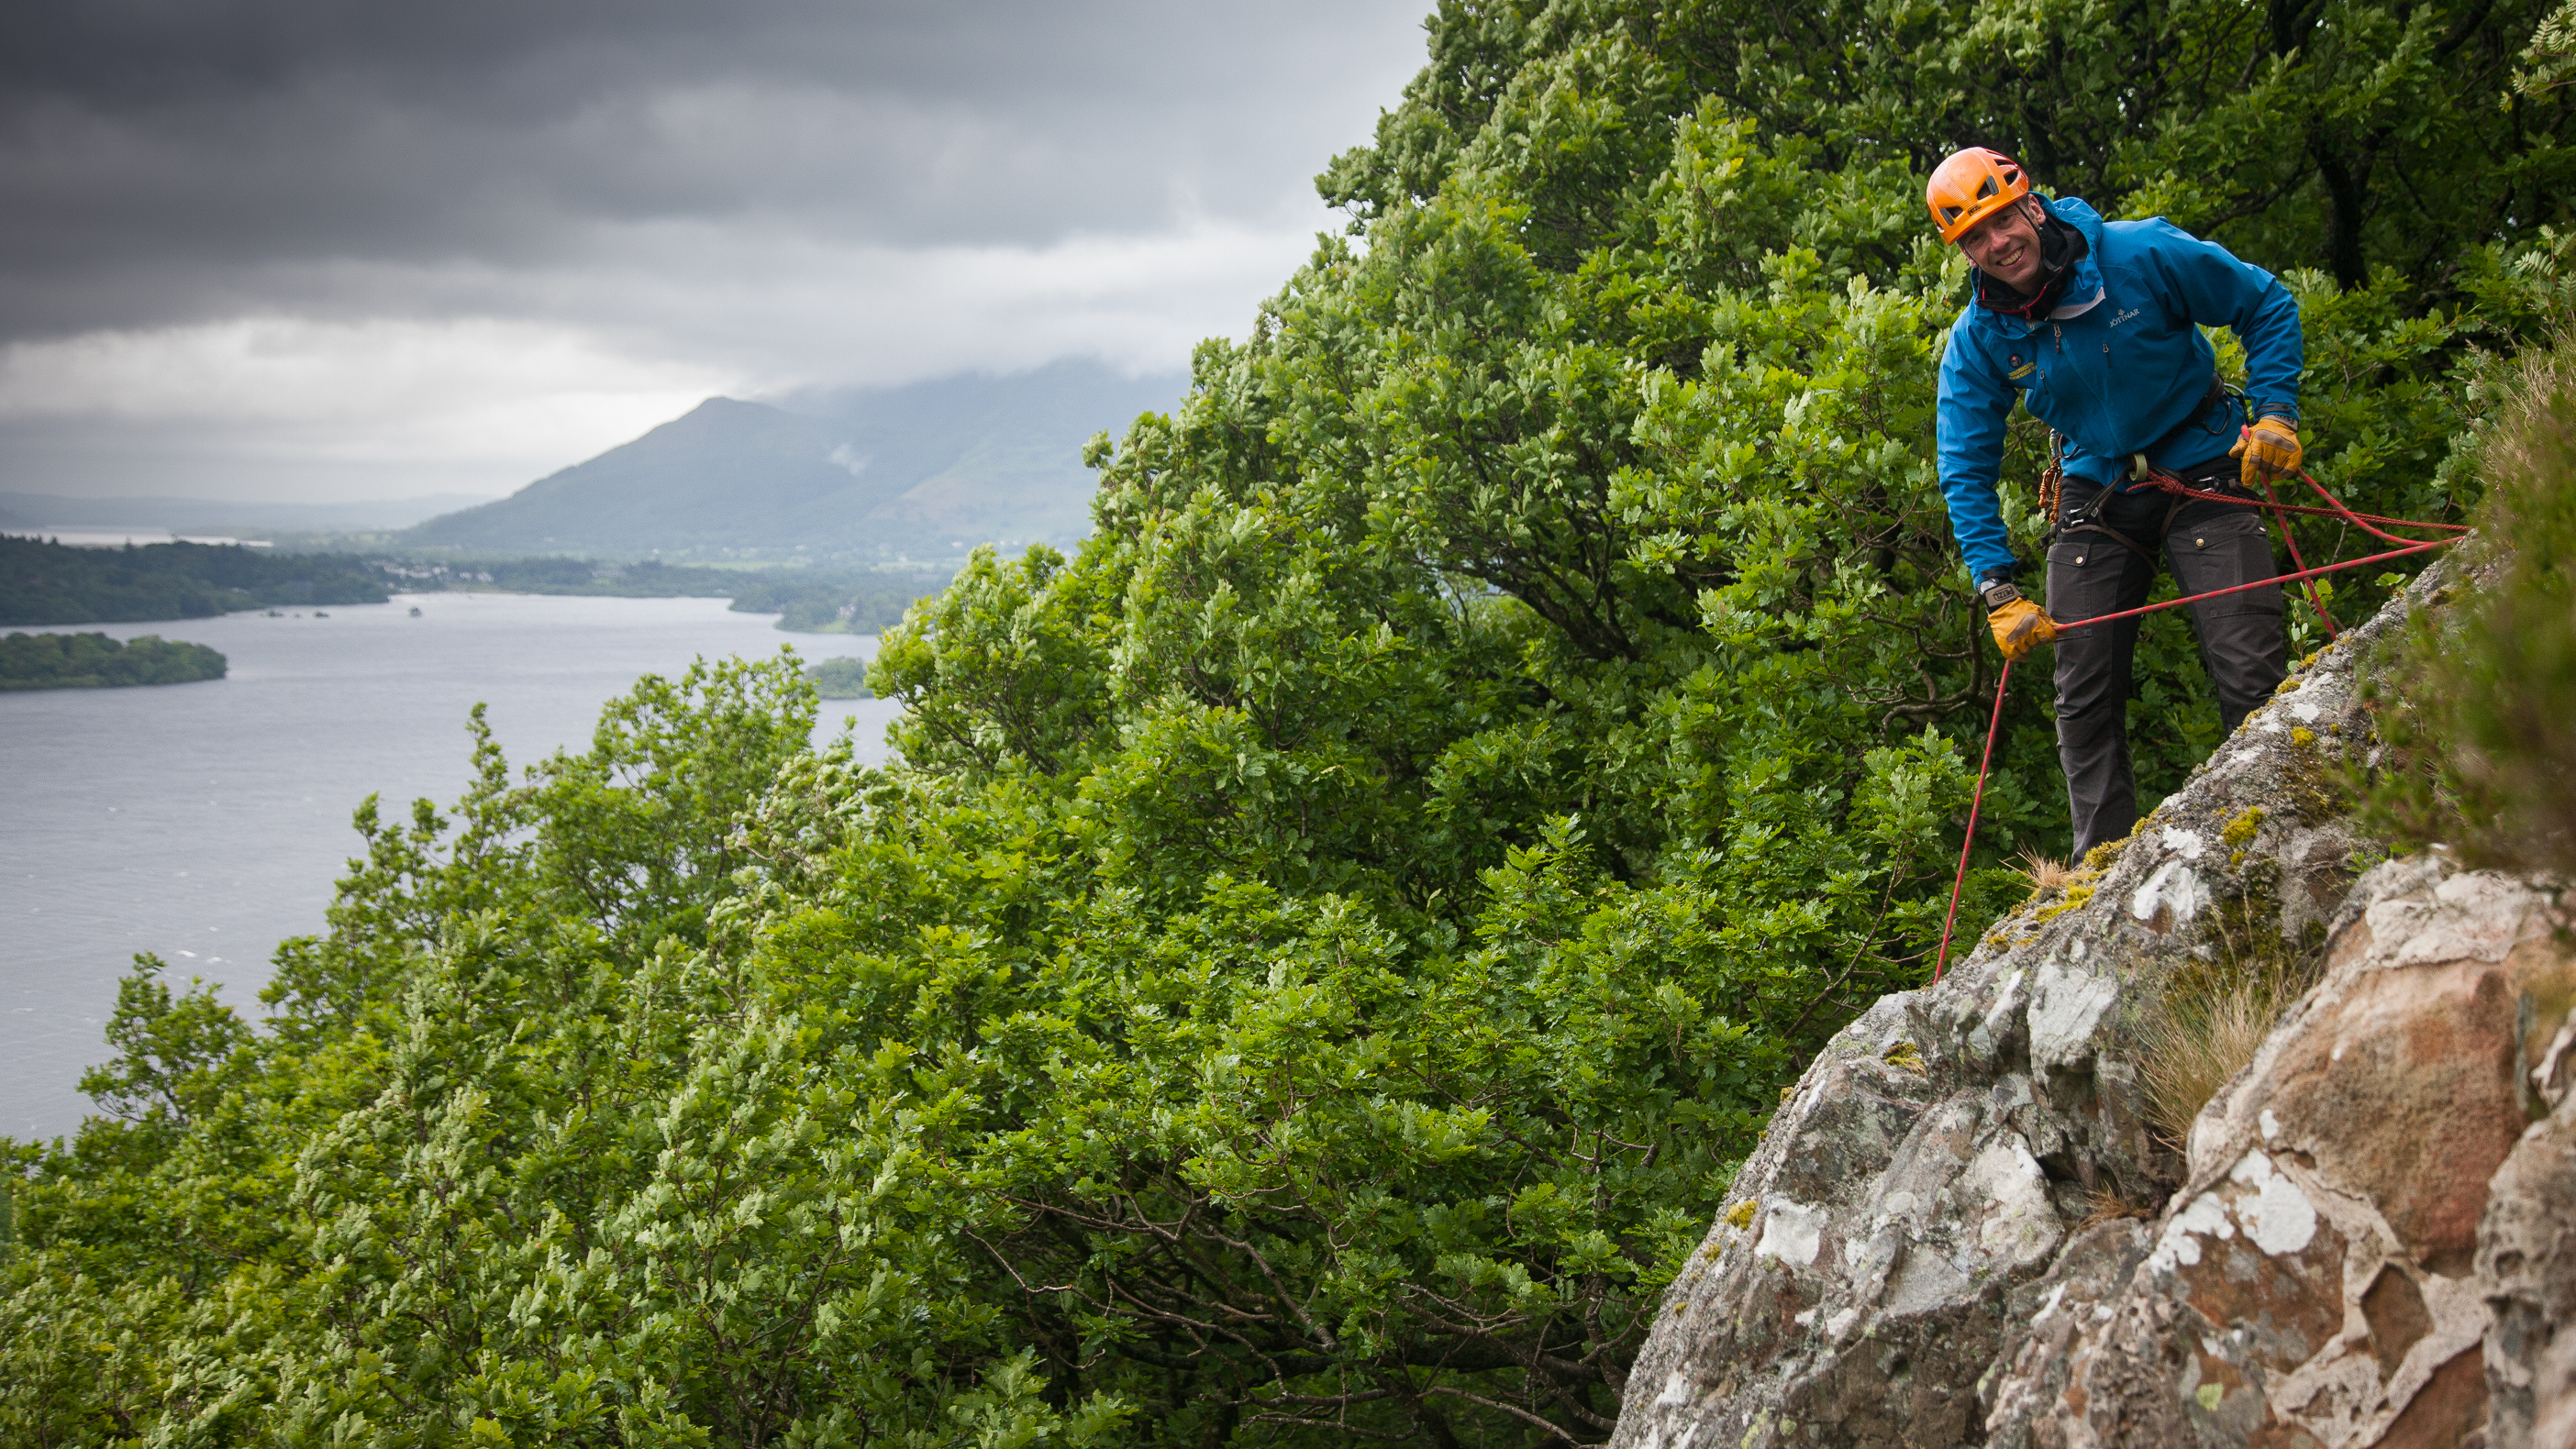 Neale managing an abseil session on a steep cliff above Derwent Water